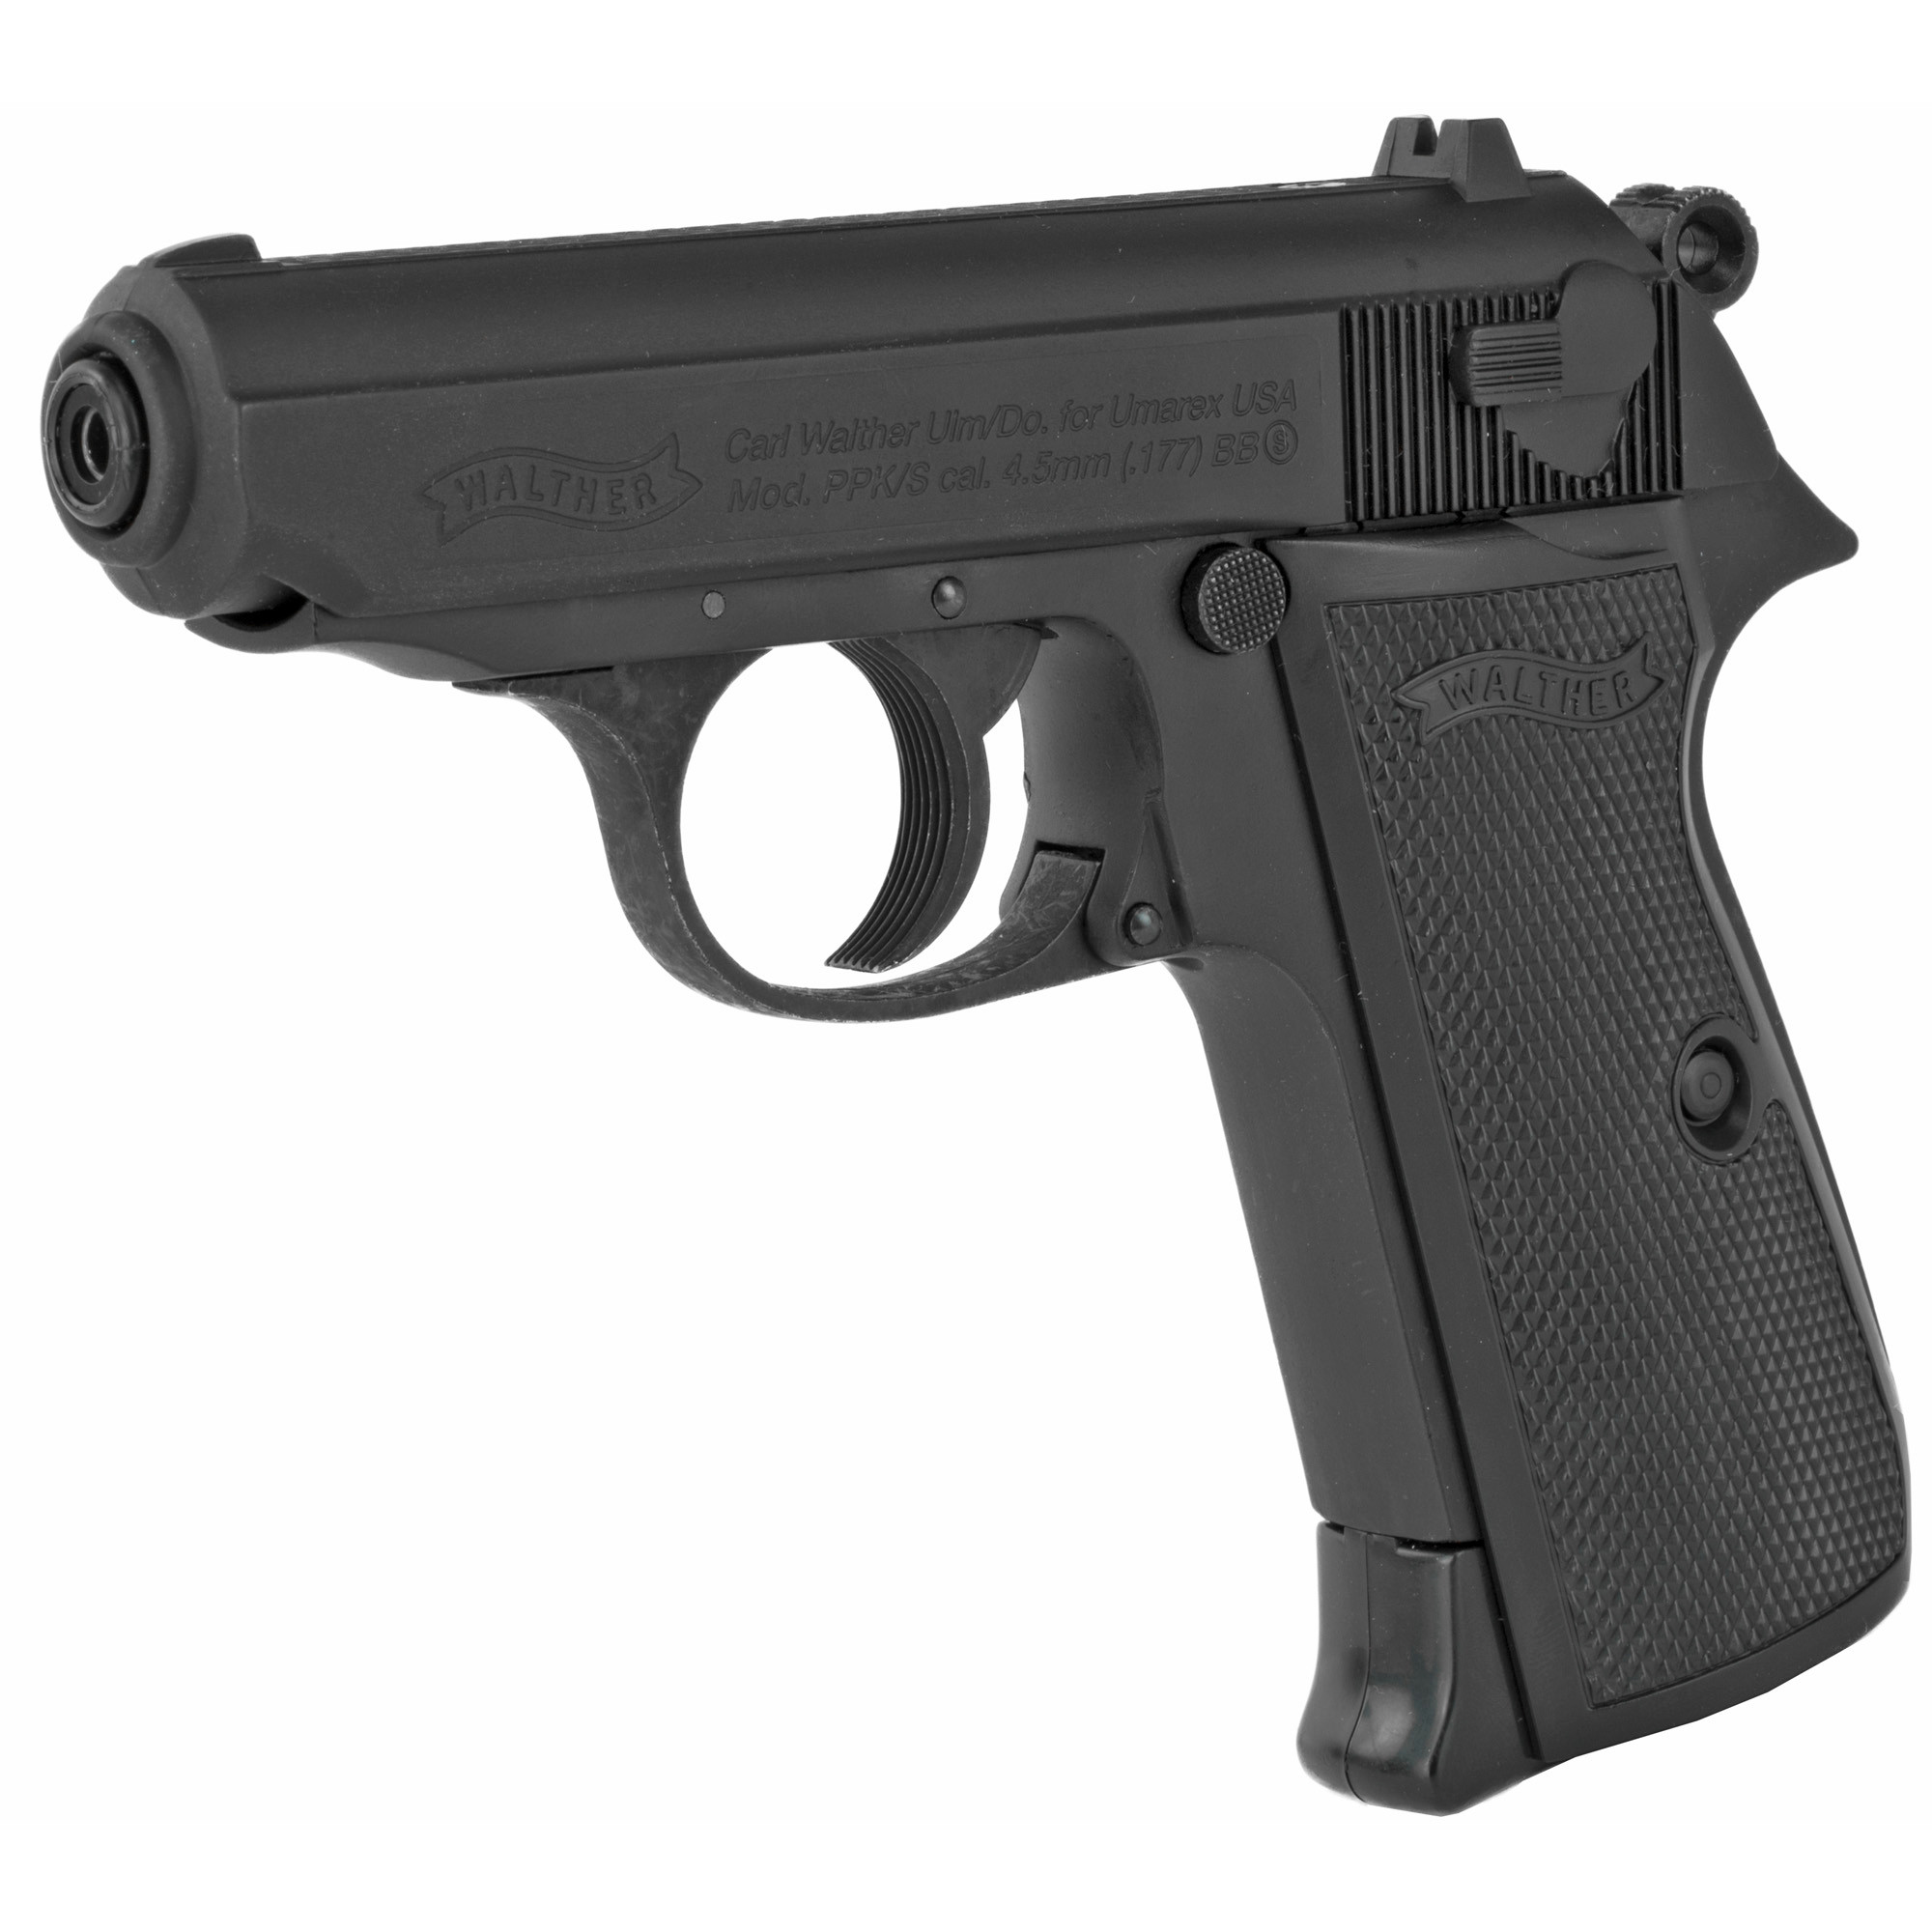 Umx Walther Ppk/s  177 15rd 295fps